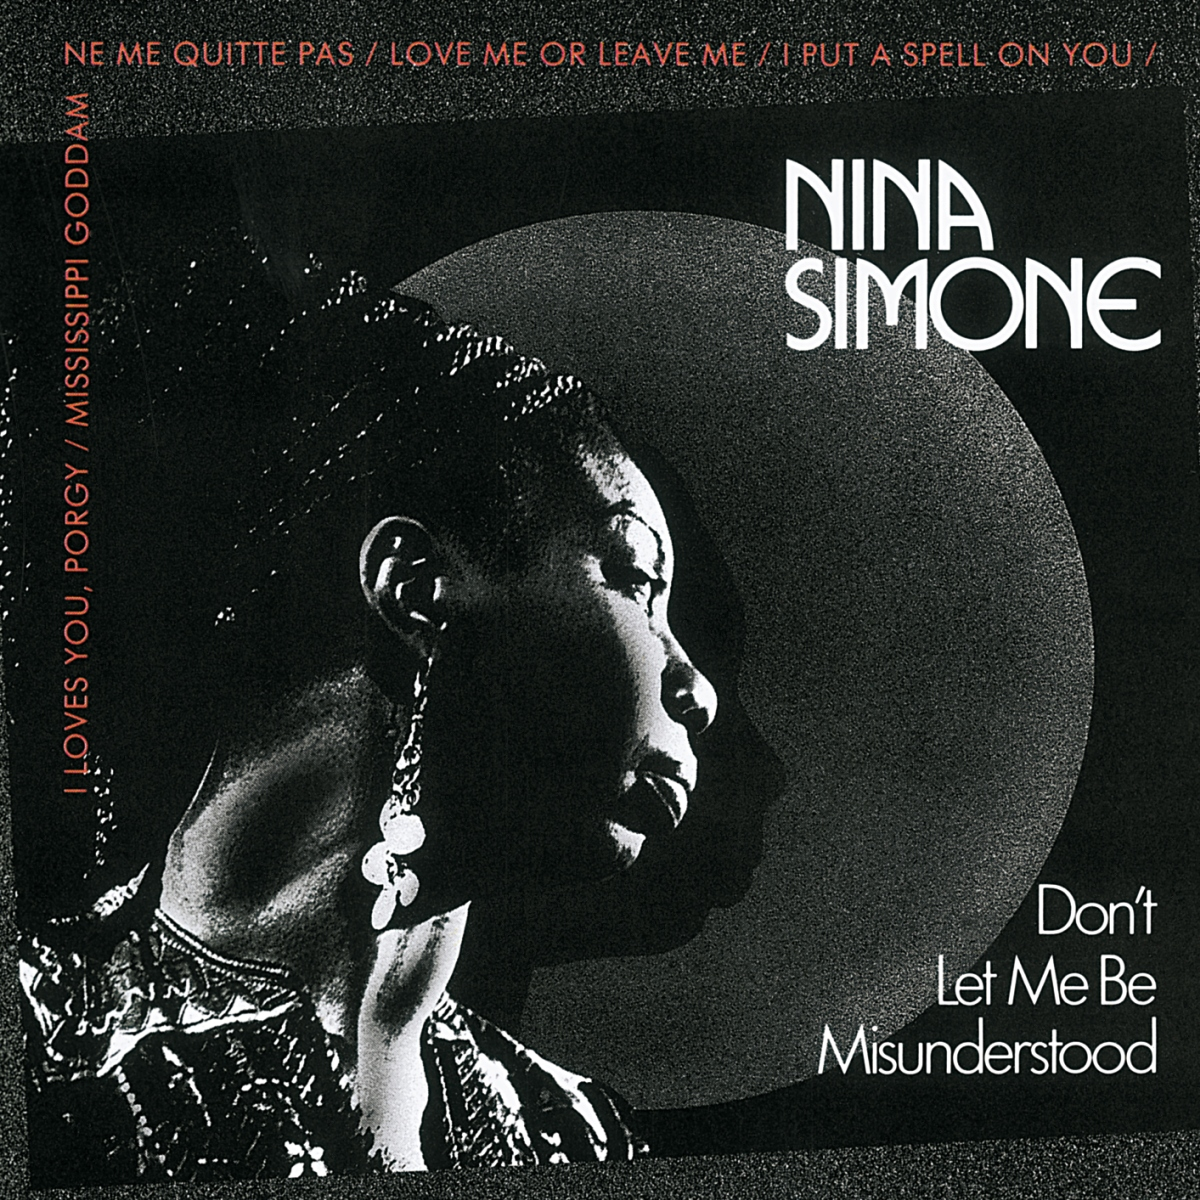 Don't Let Me Be Misunderstood (OST Кухня в Париже) - Nina Simone